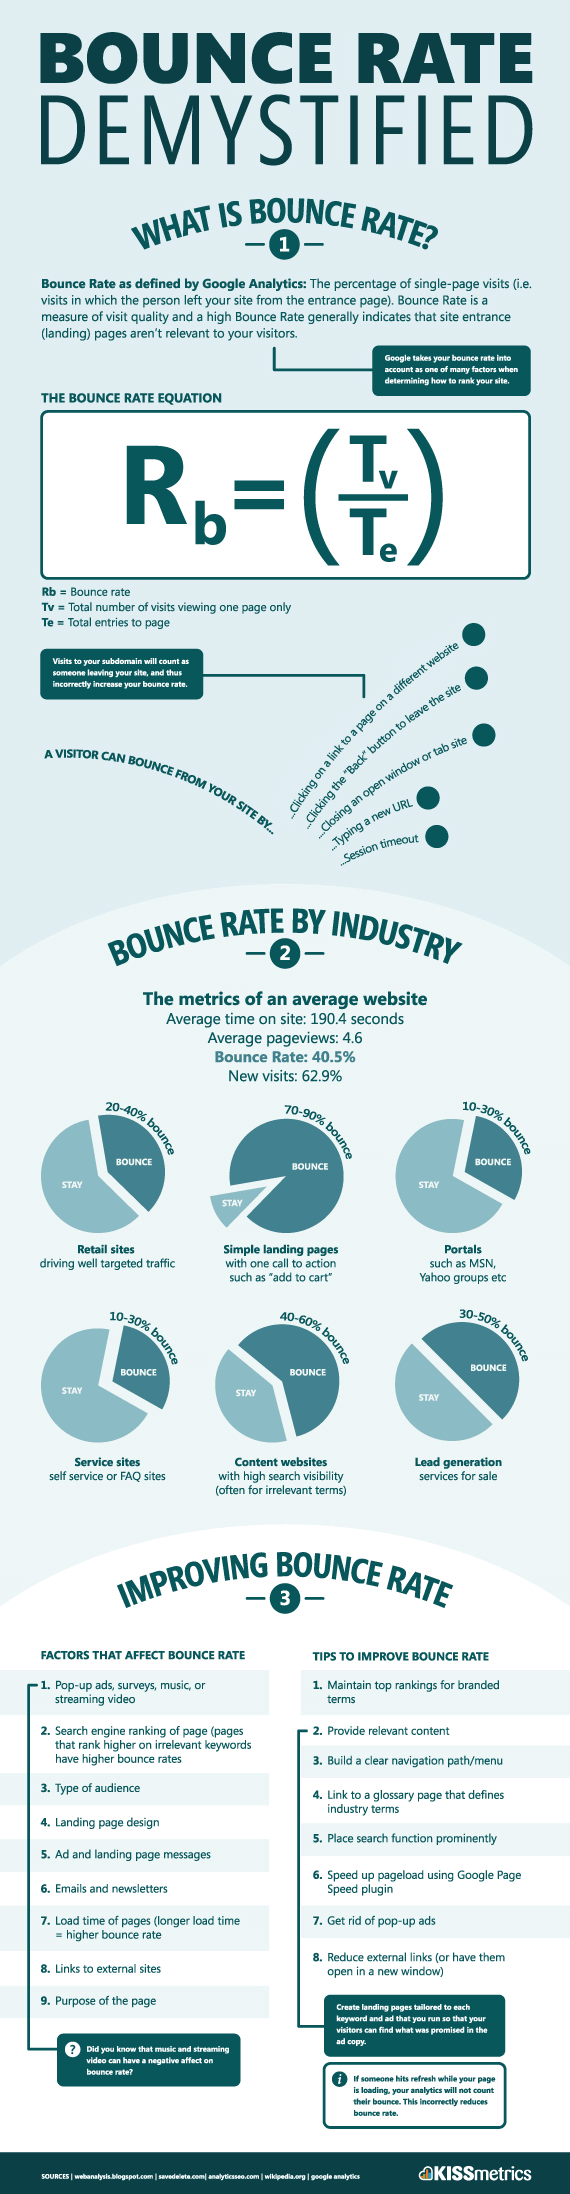 kissmetric-infographic-bounce-rate-sm.png